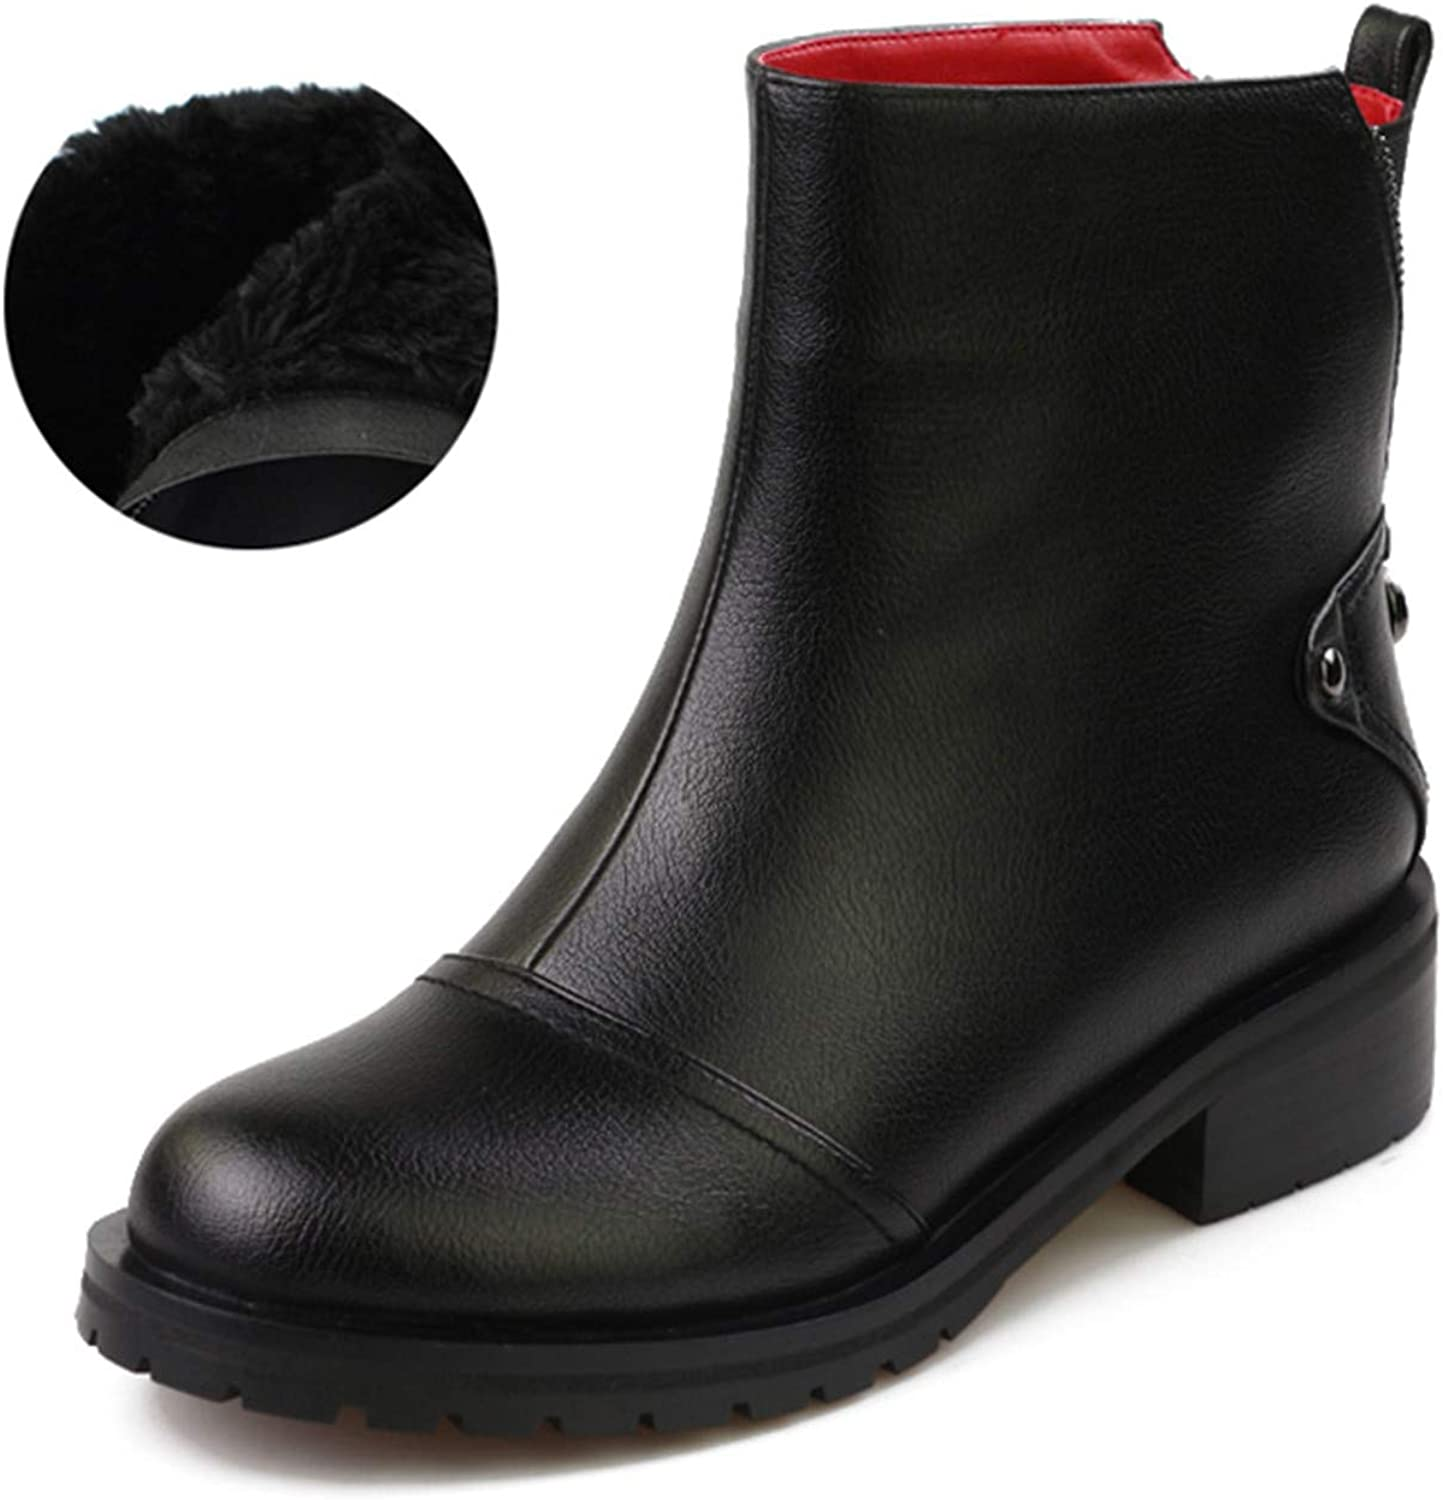 Thick Low Heels Women Ankle Boots Zip Round Toe Footwear Motorcycle